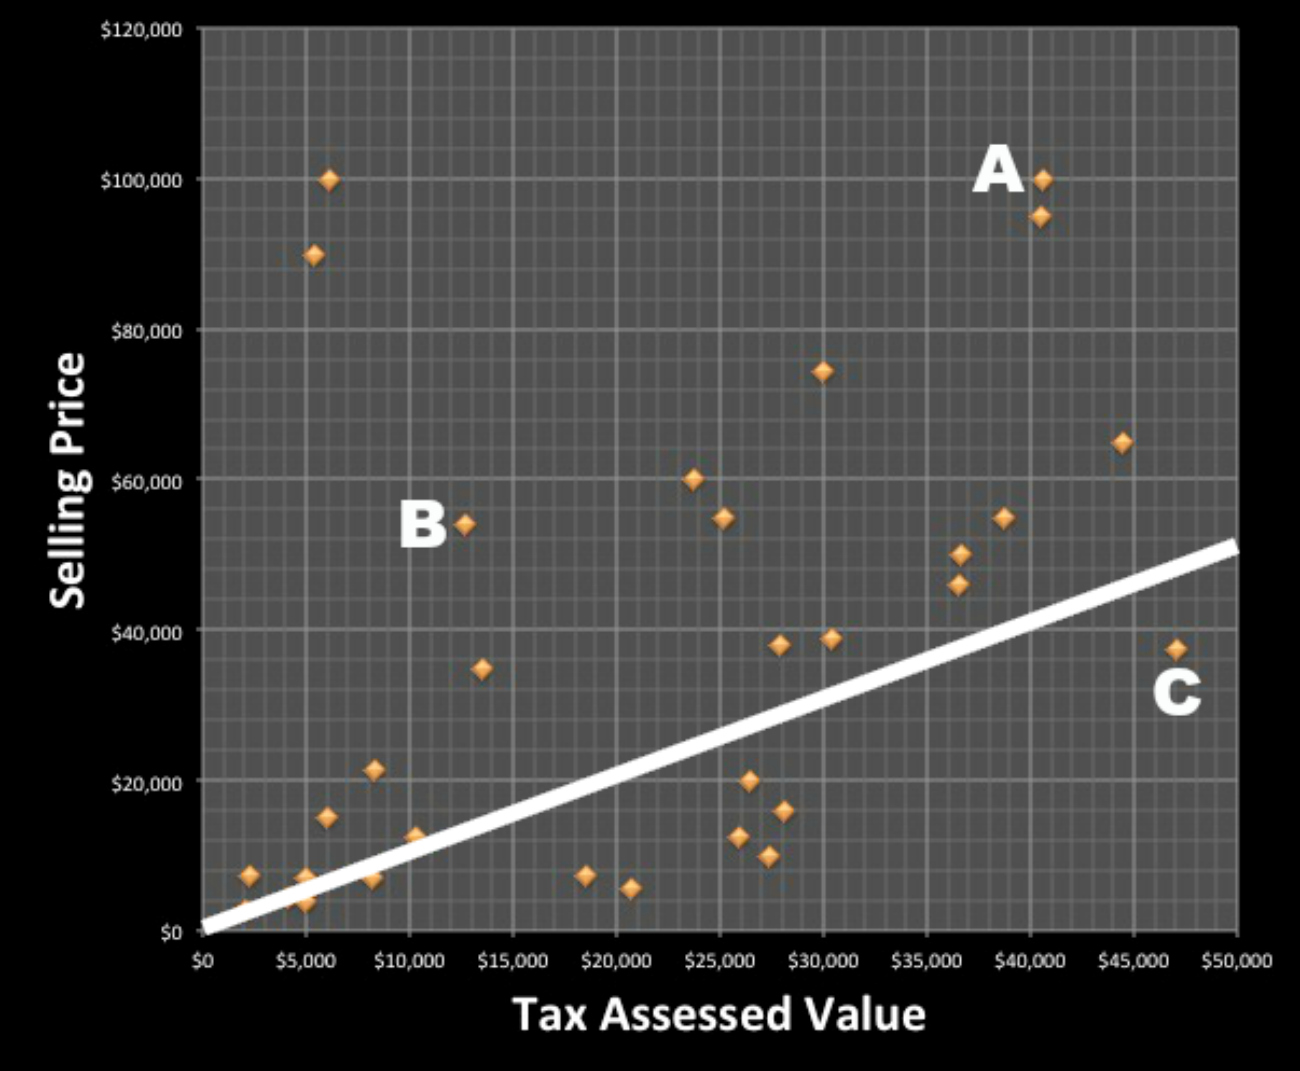 Relationship Between Tax-Assessed Value and Selling Price: $0-$50,000